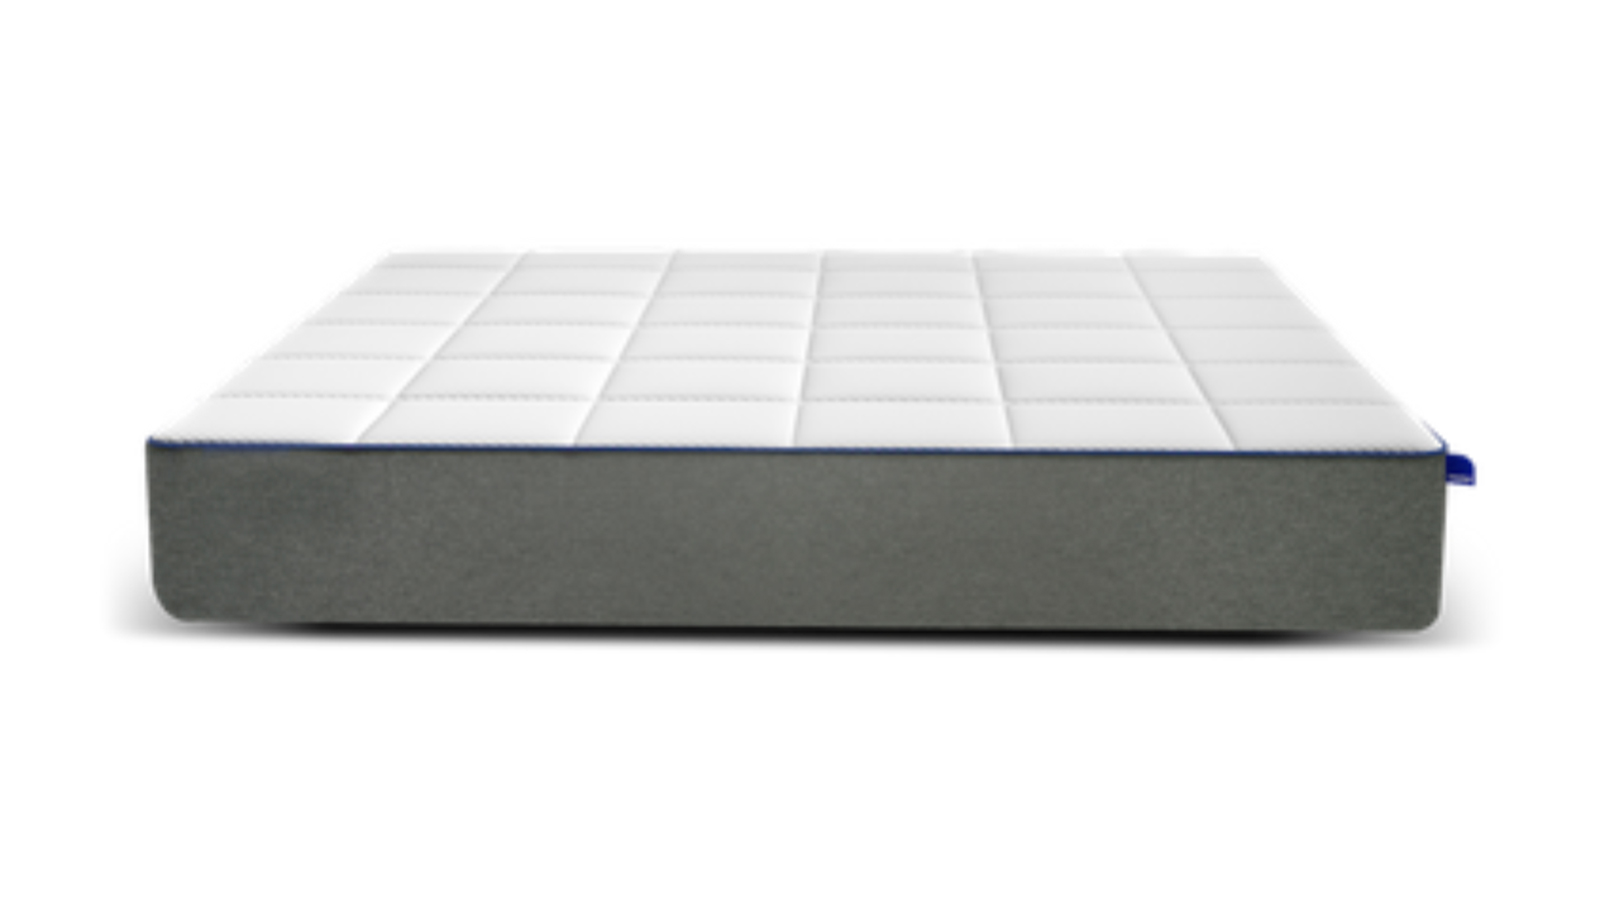 Nectar Sleep Mattress Review Is This Bed In A Box Brand Worth The Price Cnn Underscored